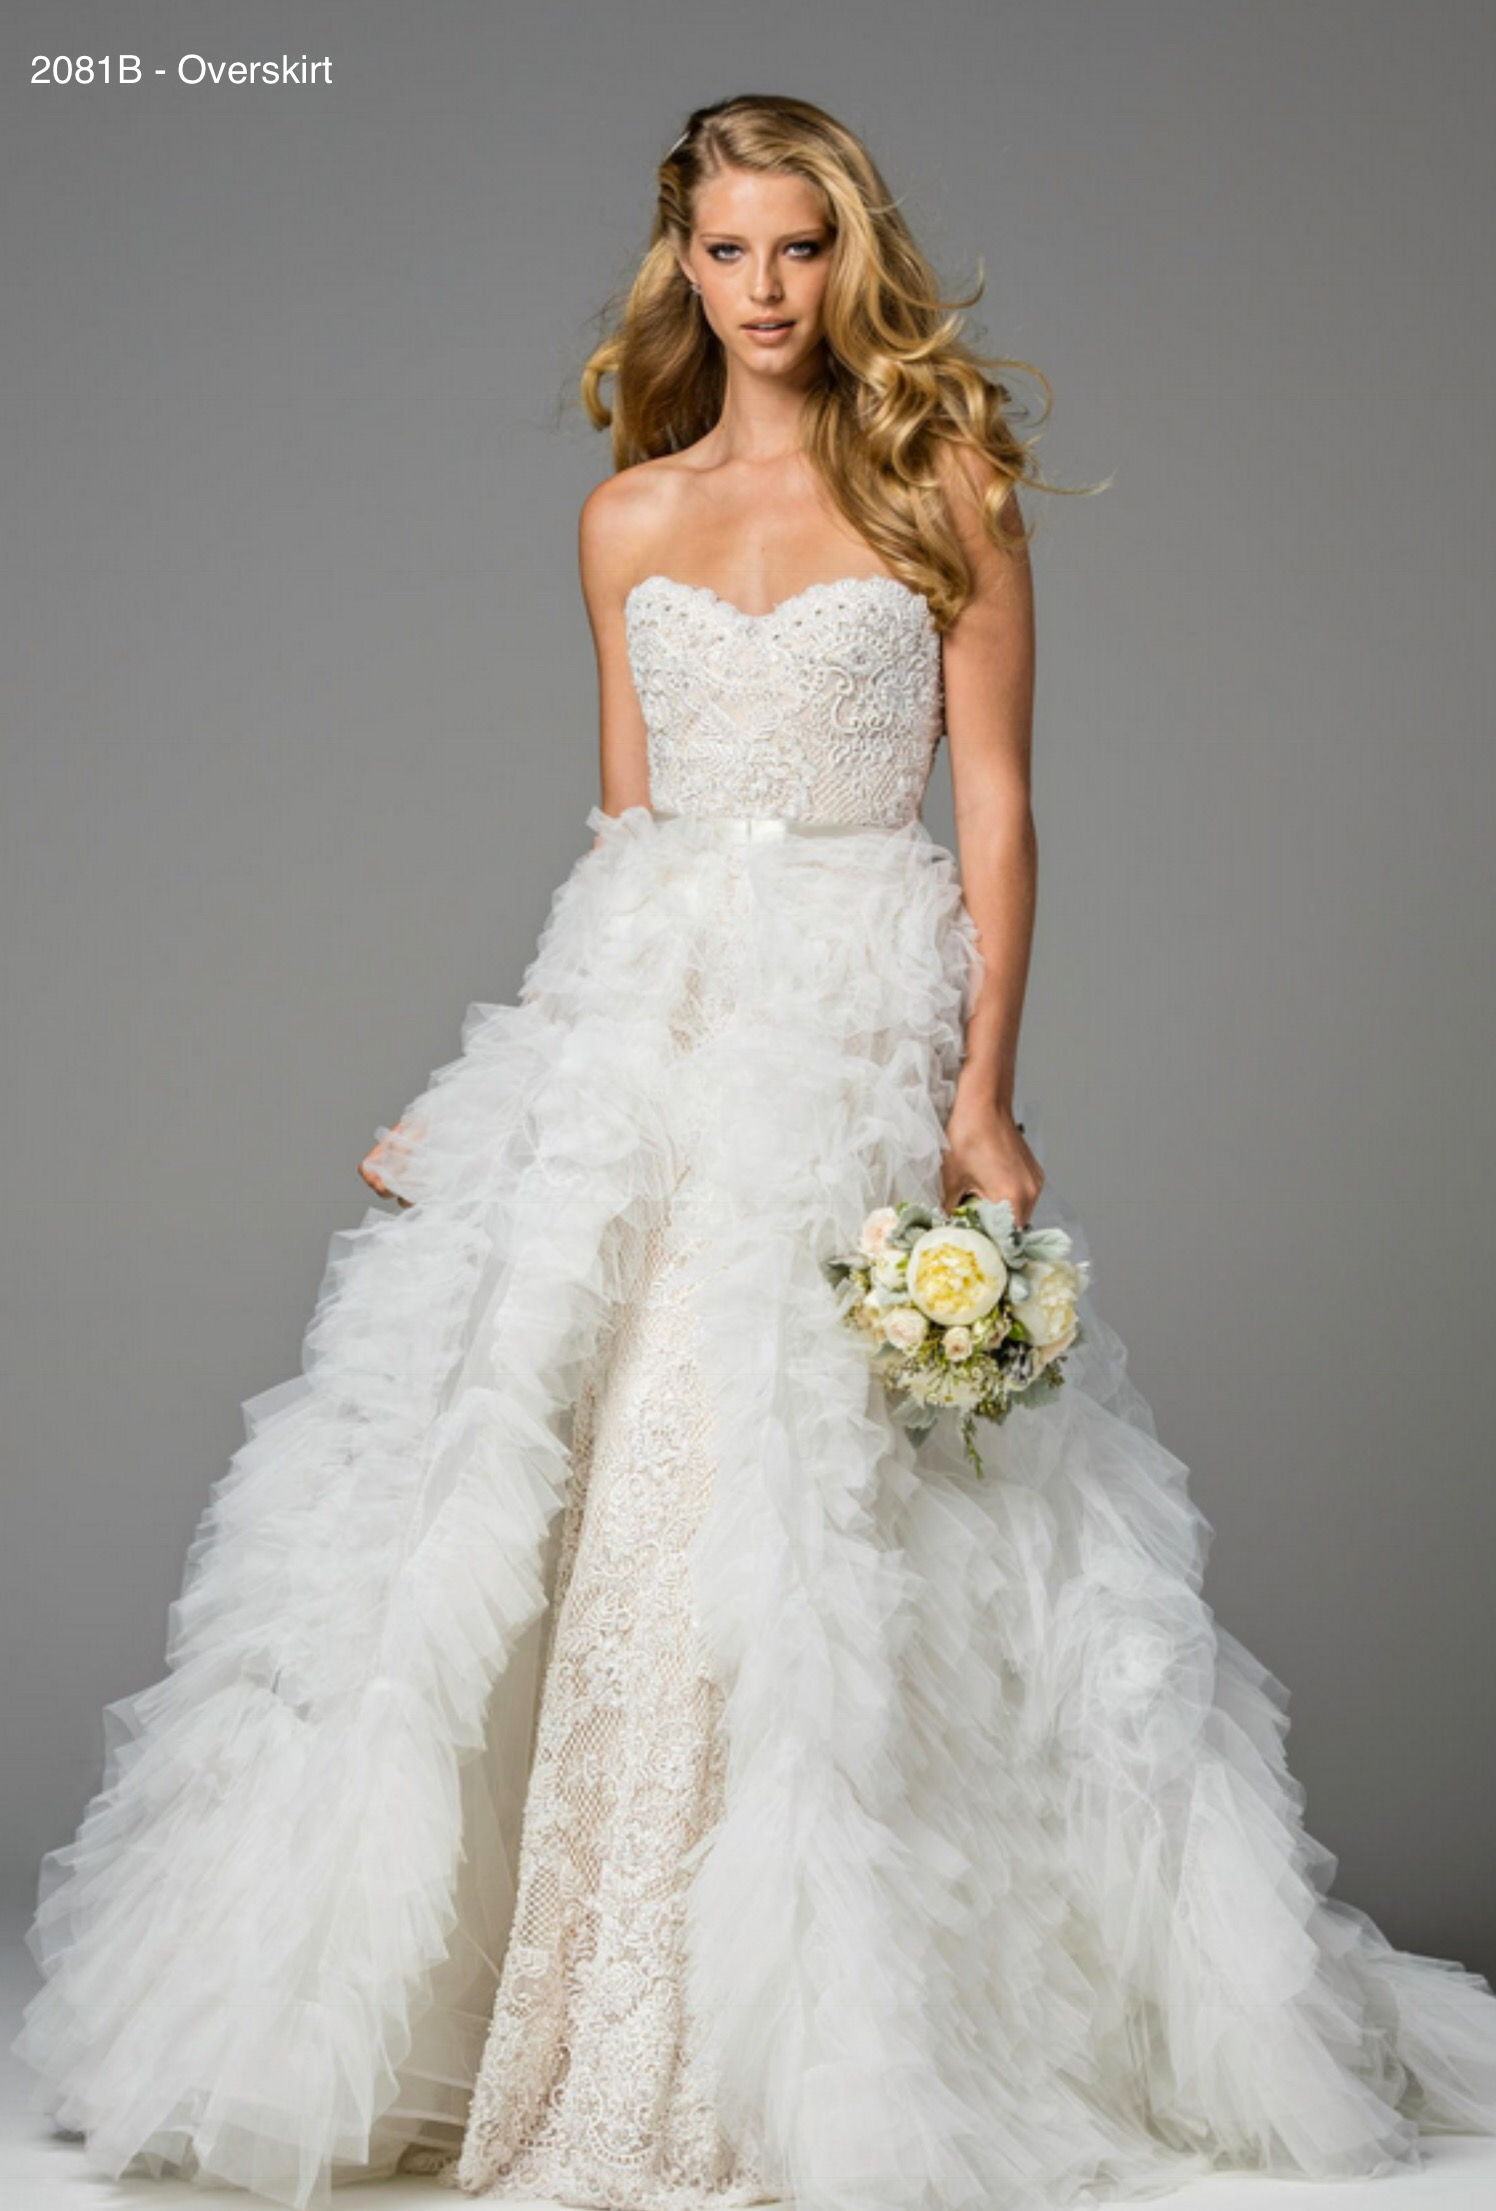 Style 2081B - Overskirt only